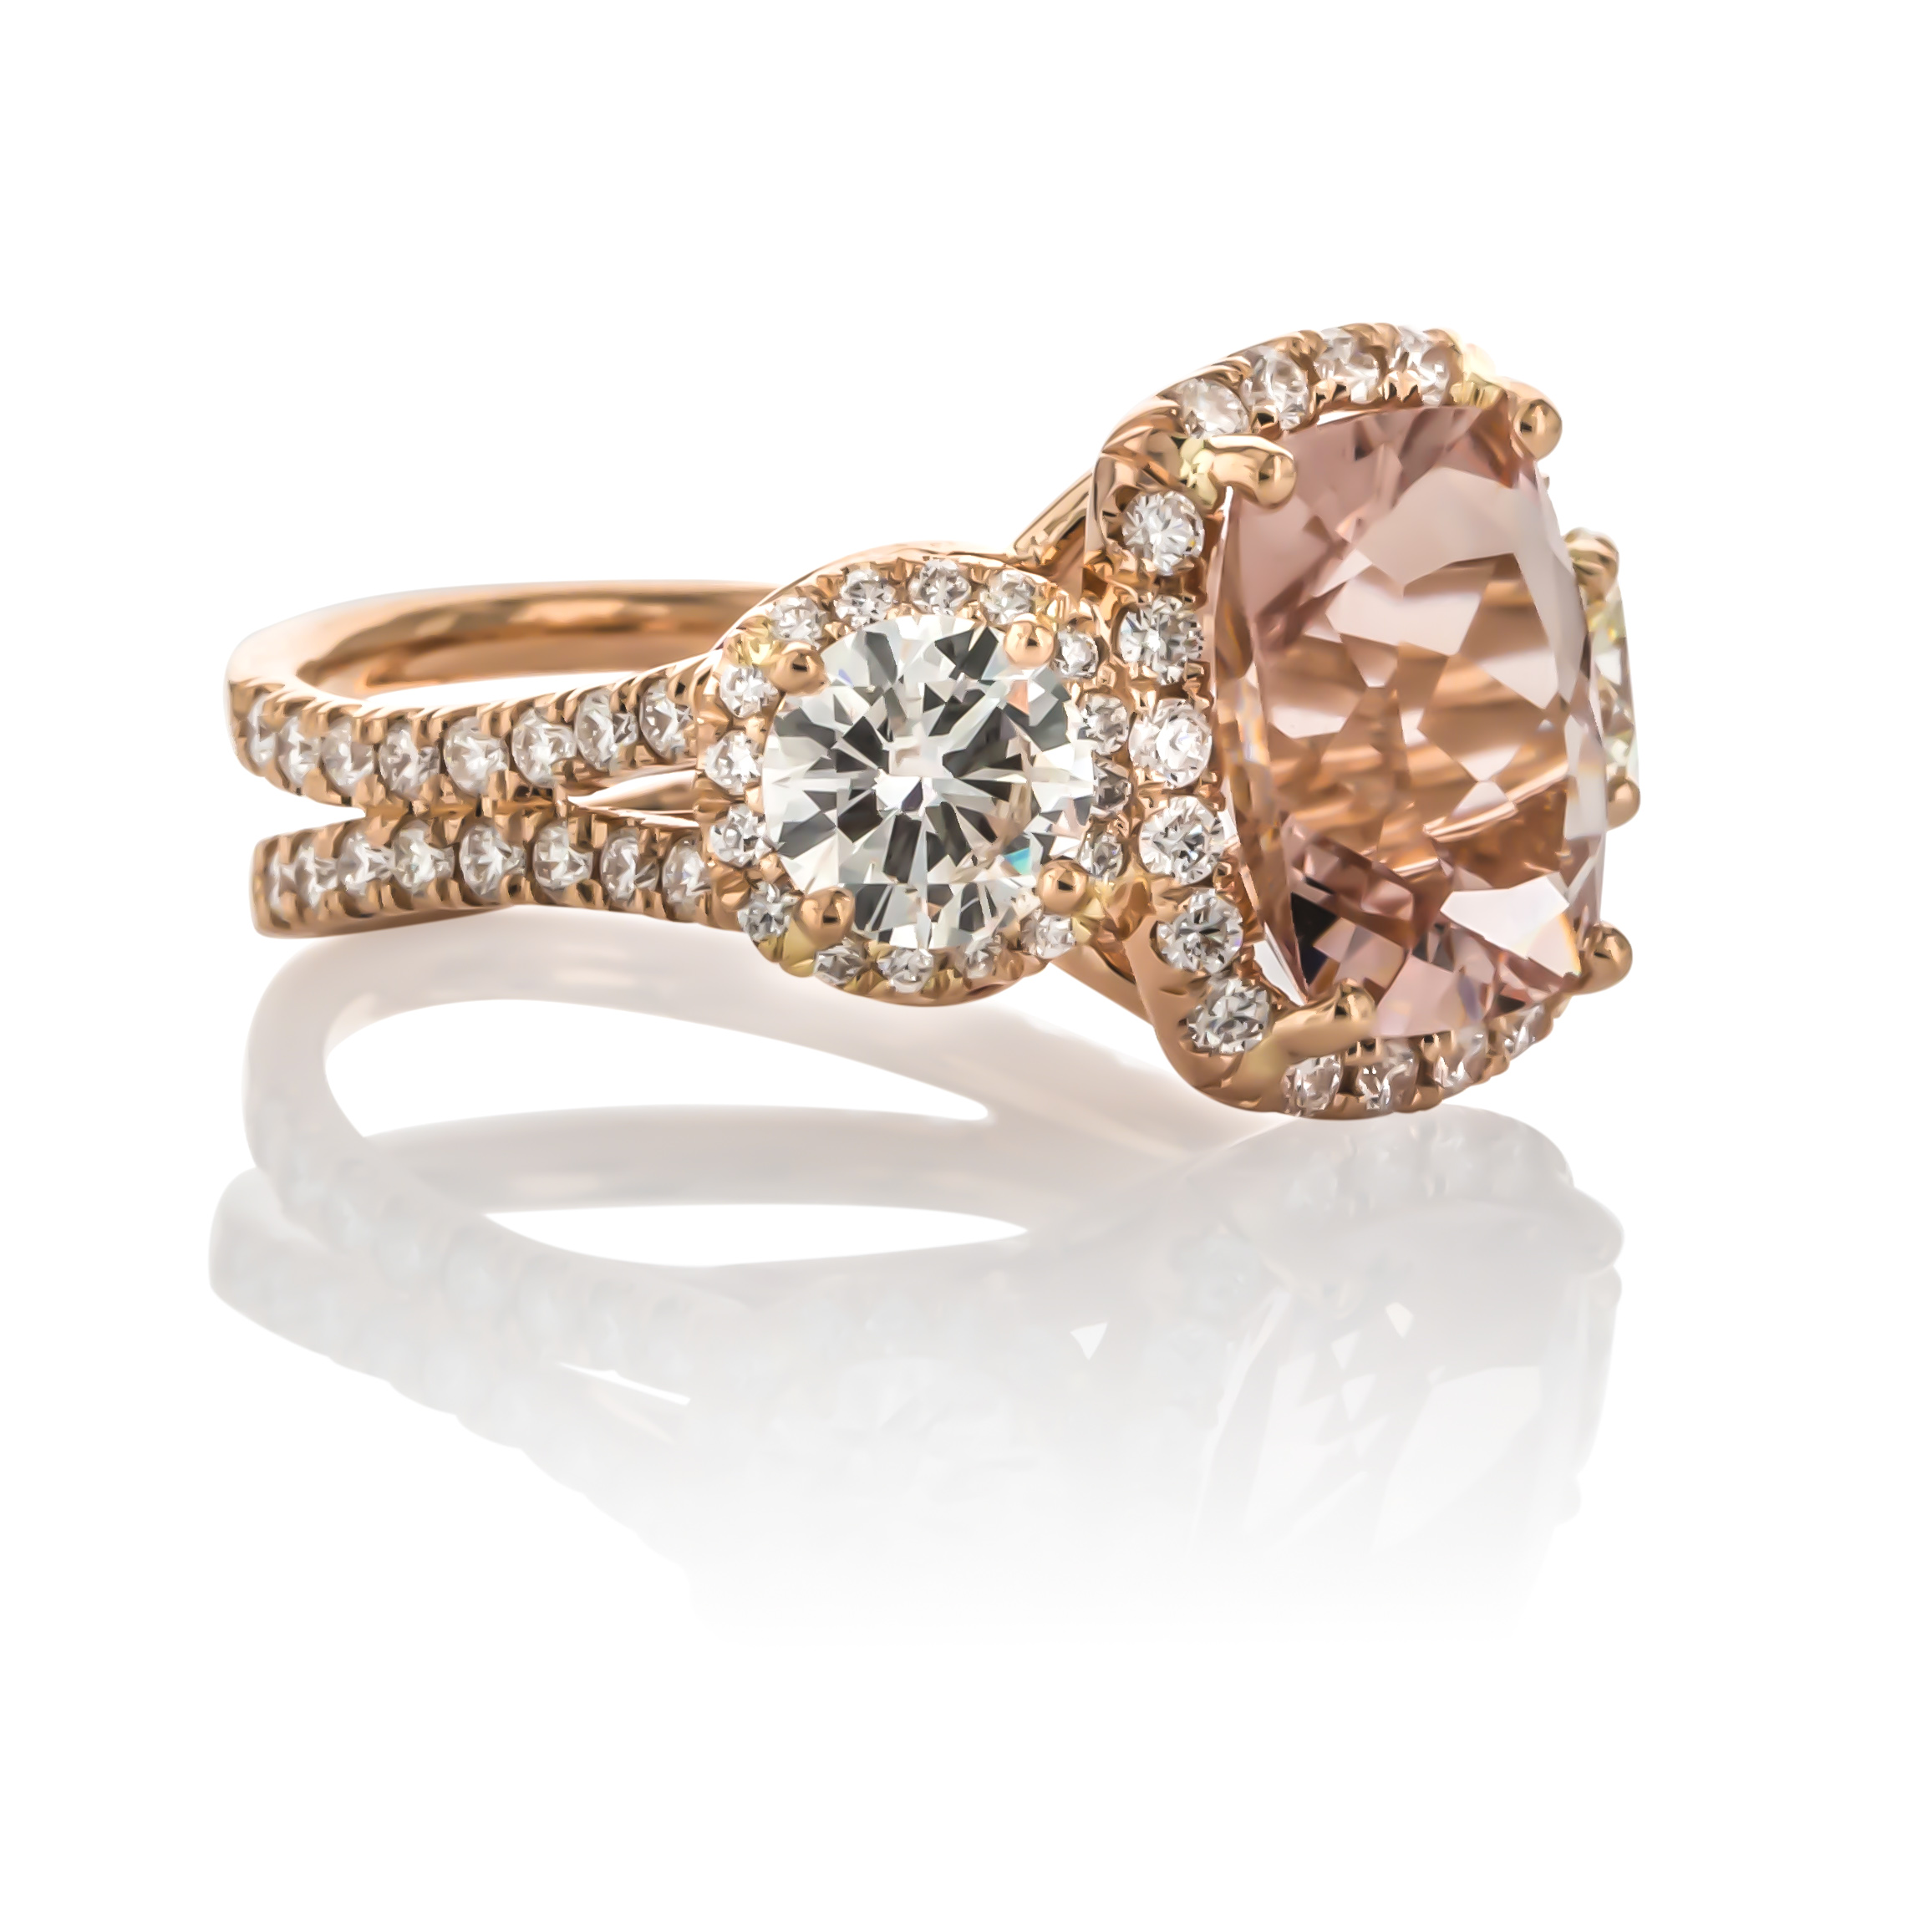 CUSTOM MORGANITE AND DIAMOND RING